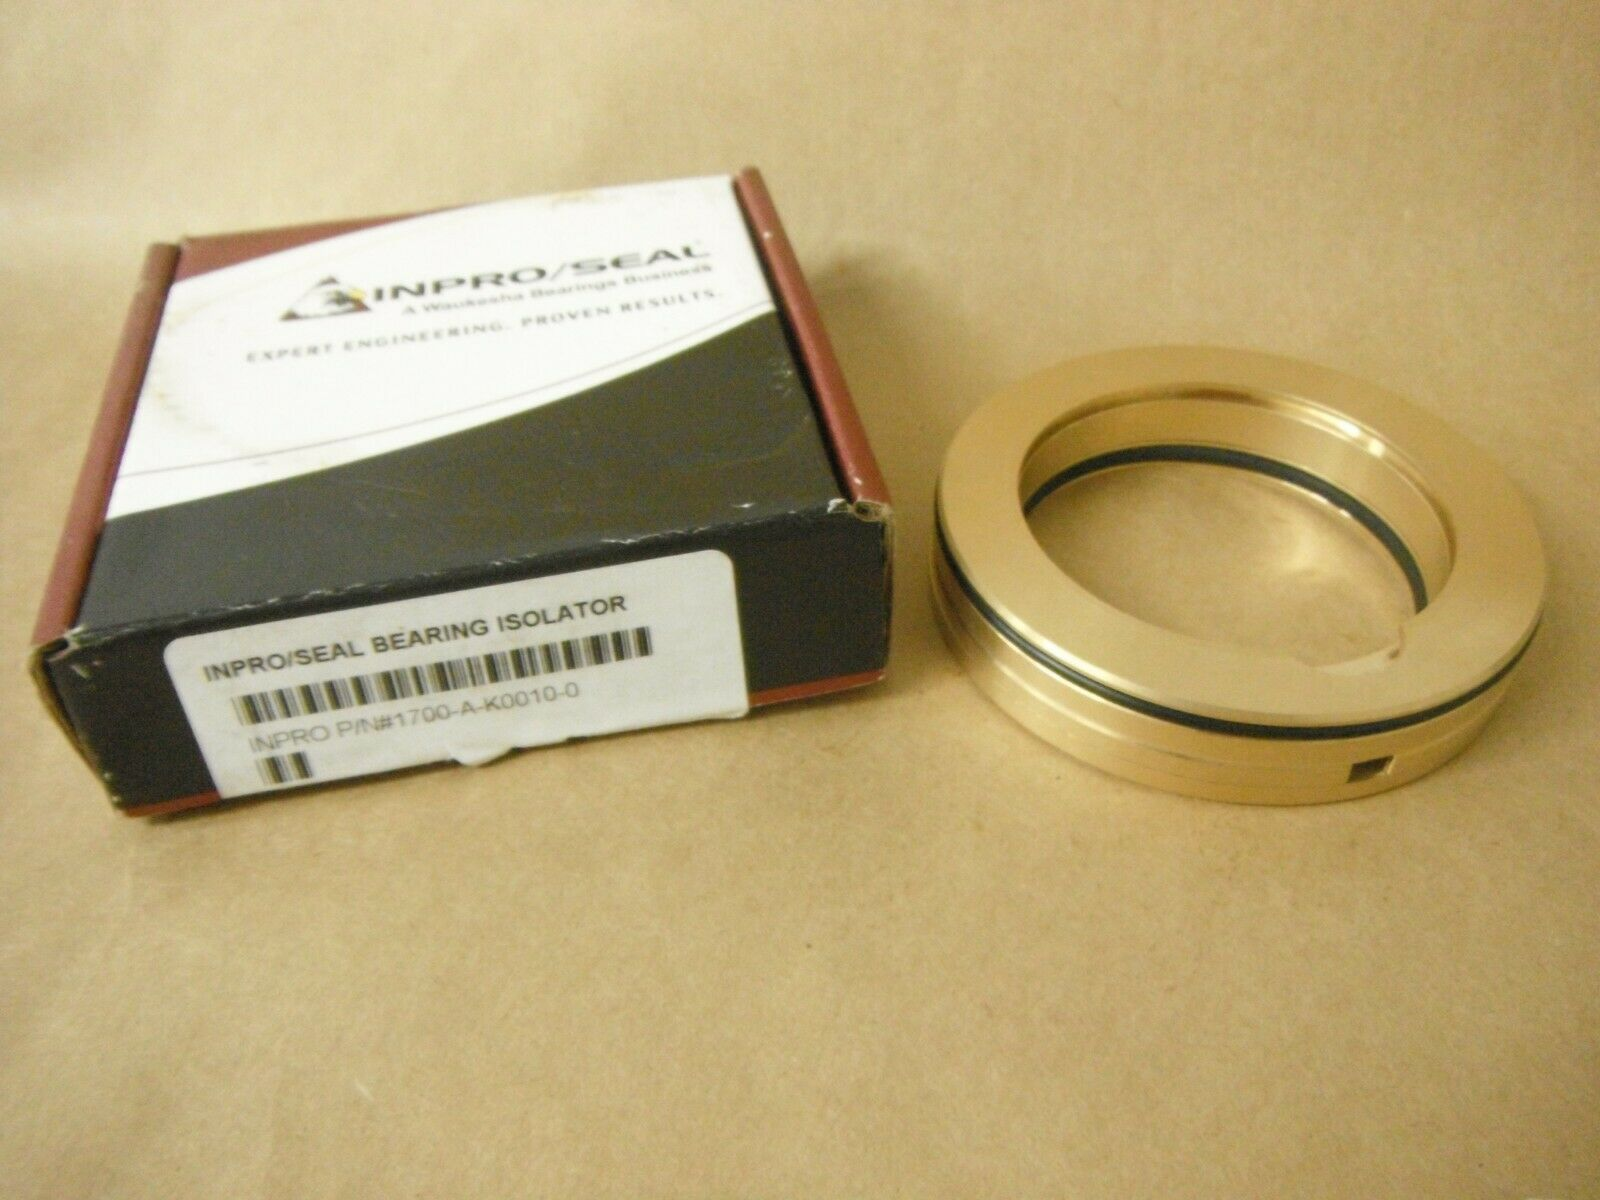 Primary image for INPRO SEAL BEARING ISOLATOR 1700-A-K0010-0